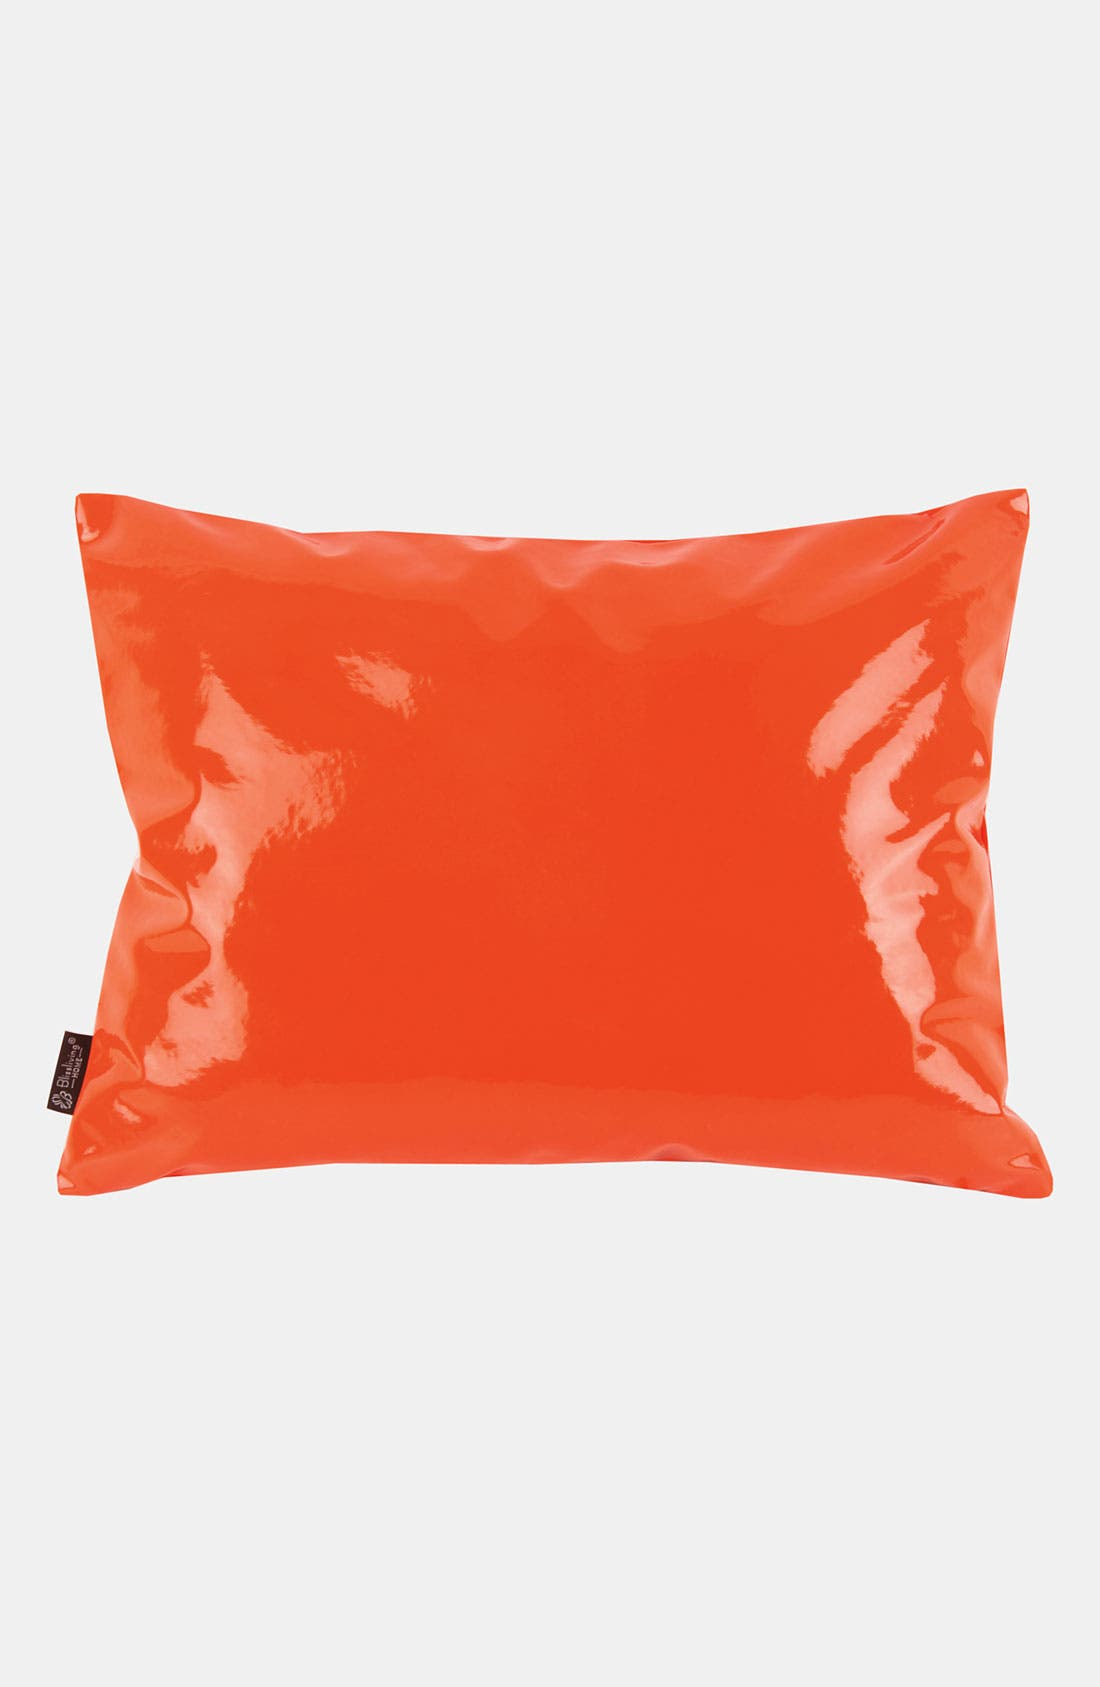 Alternate Image 1 Selected - Blissliving Home 'Soho' Vinyl Pillow (Online Only)